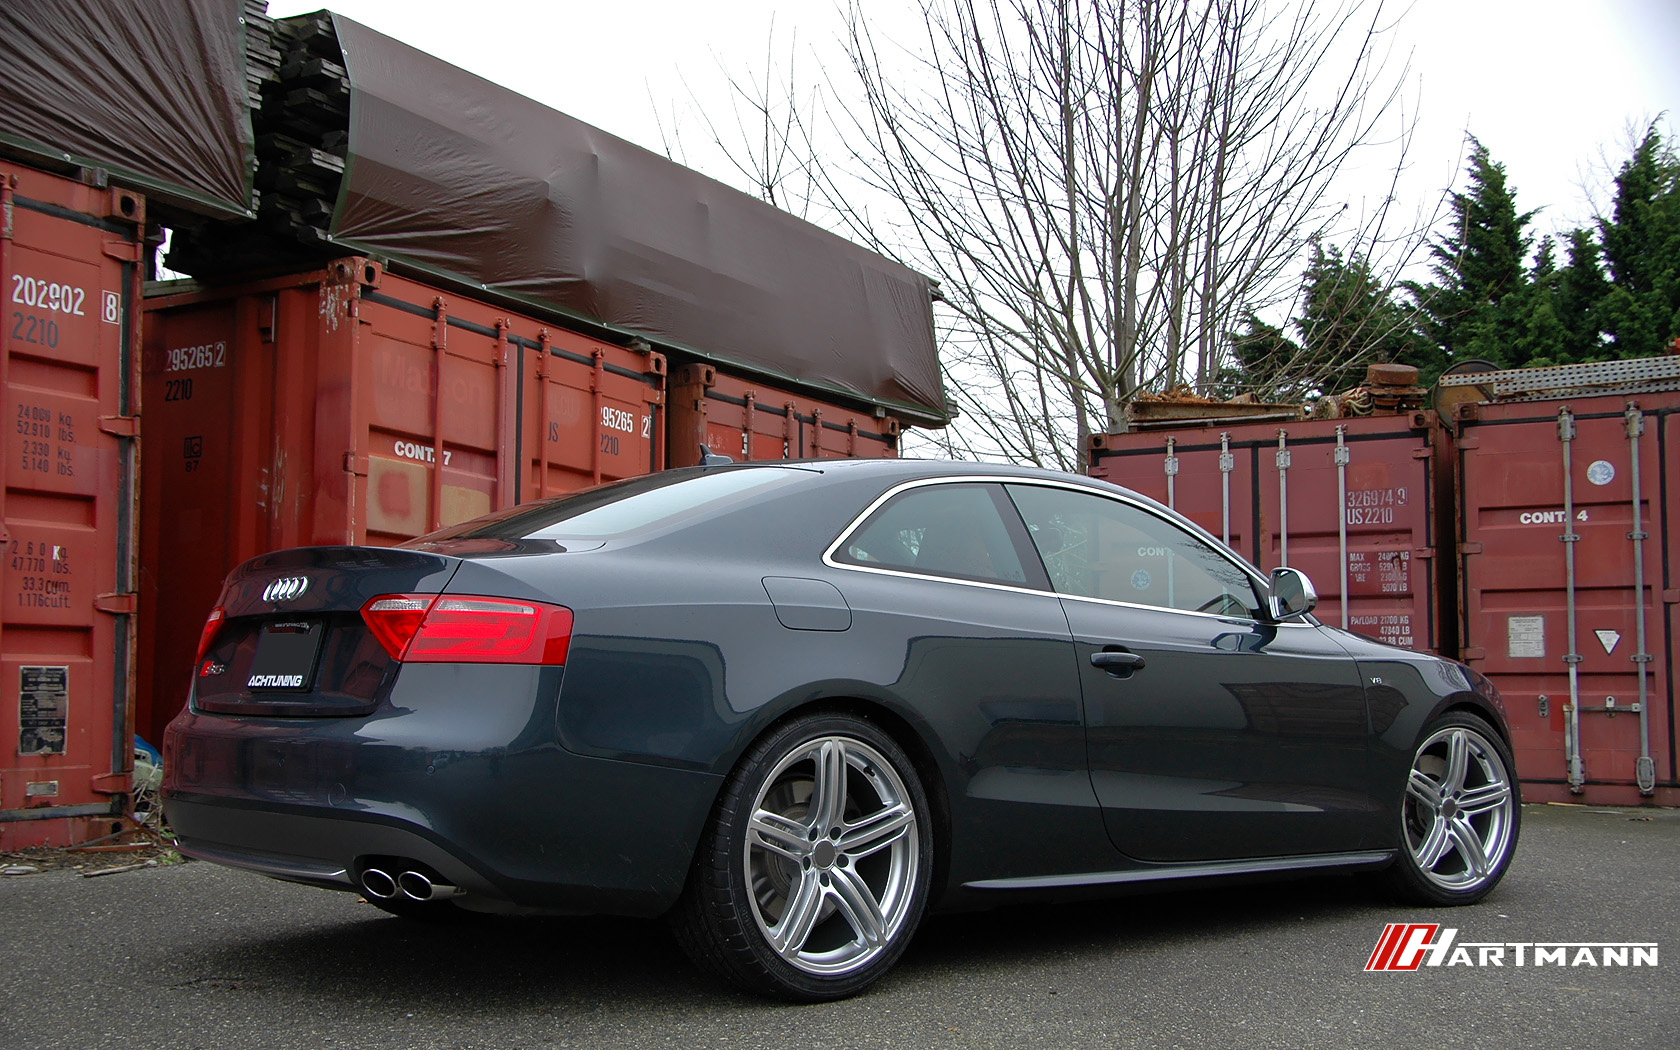 Audi b8 s5 hartmann wheels hrs6 204 gs 19 it2 hwm